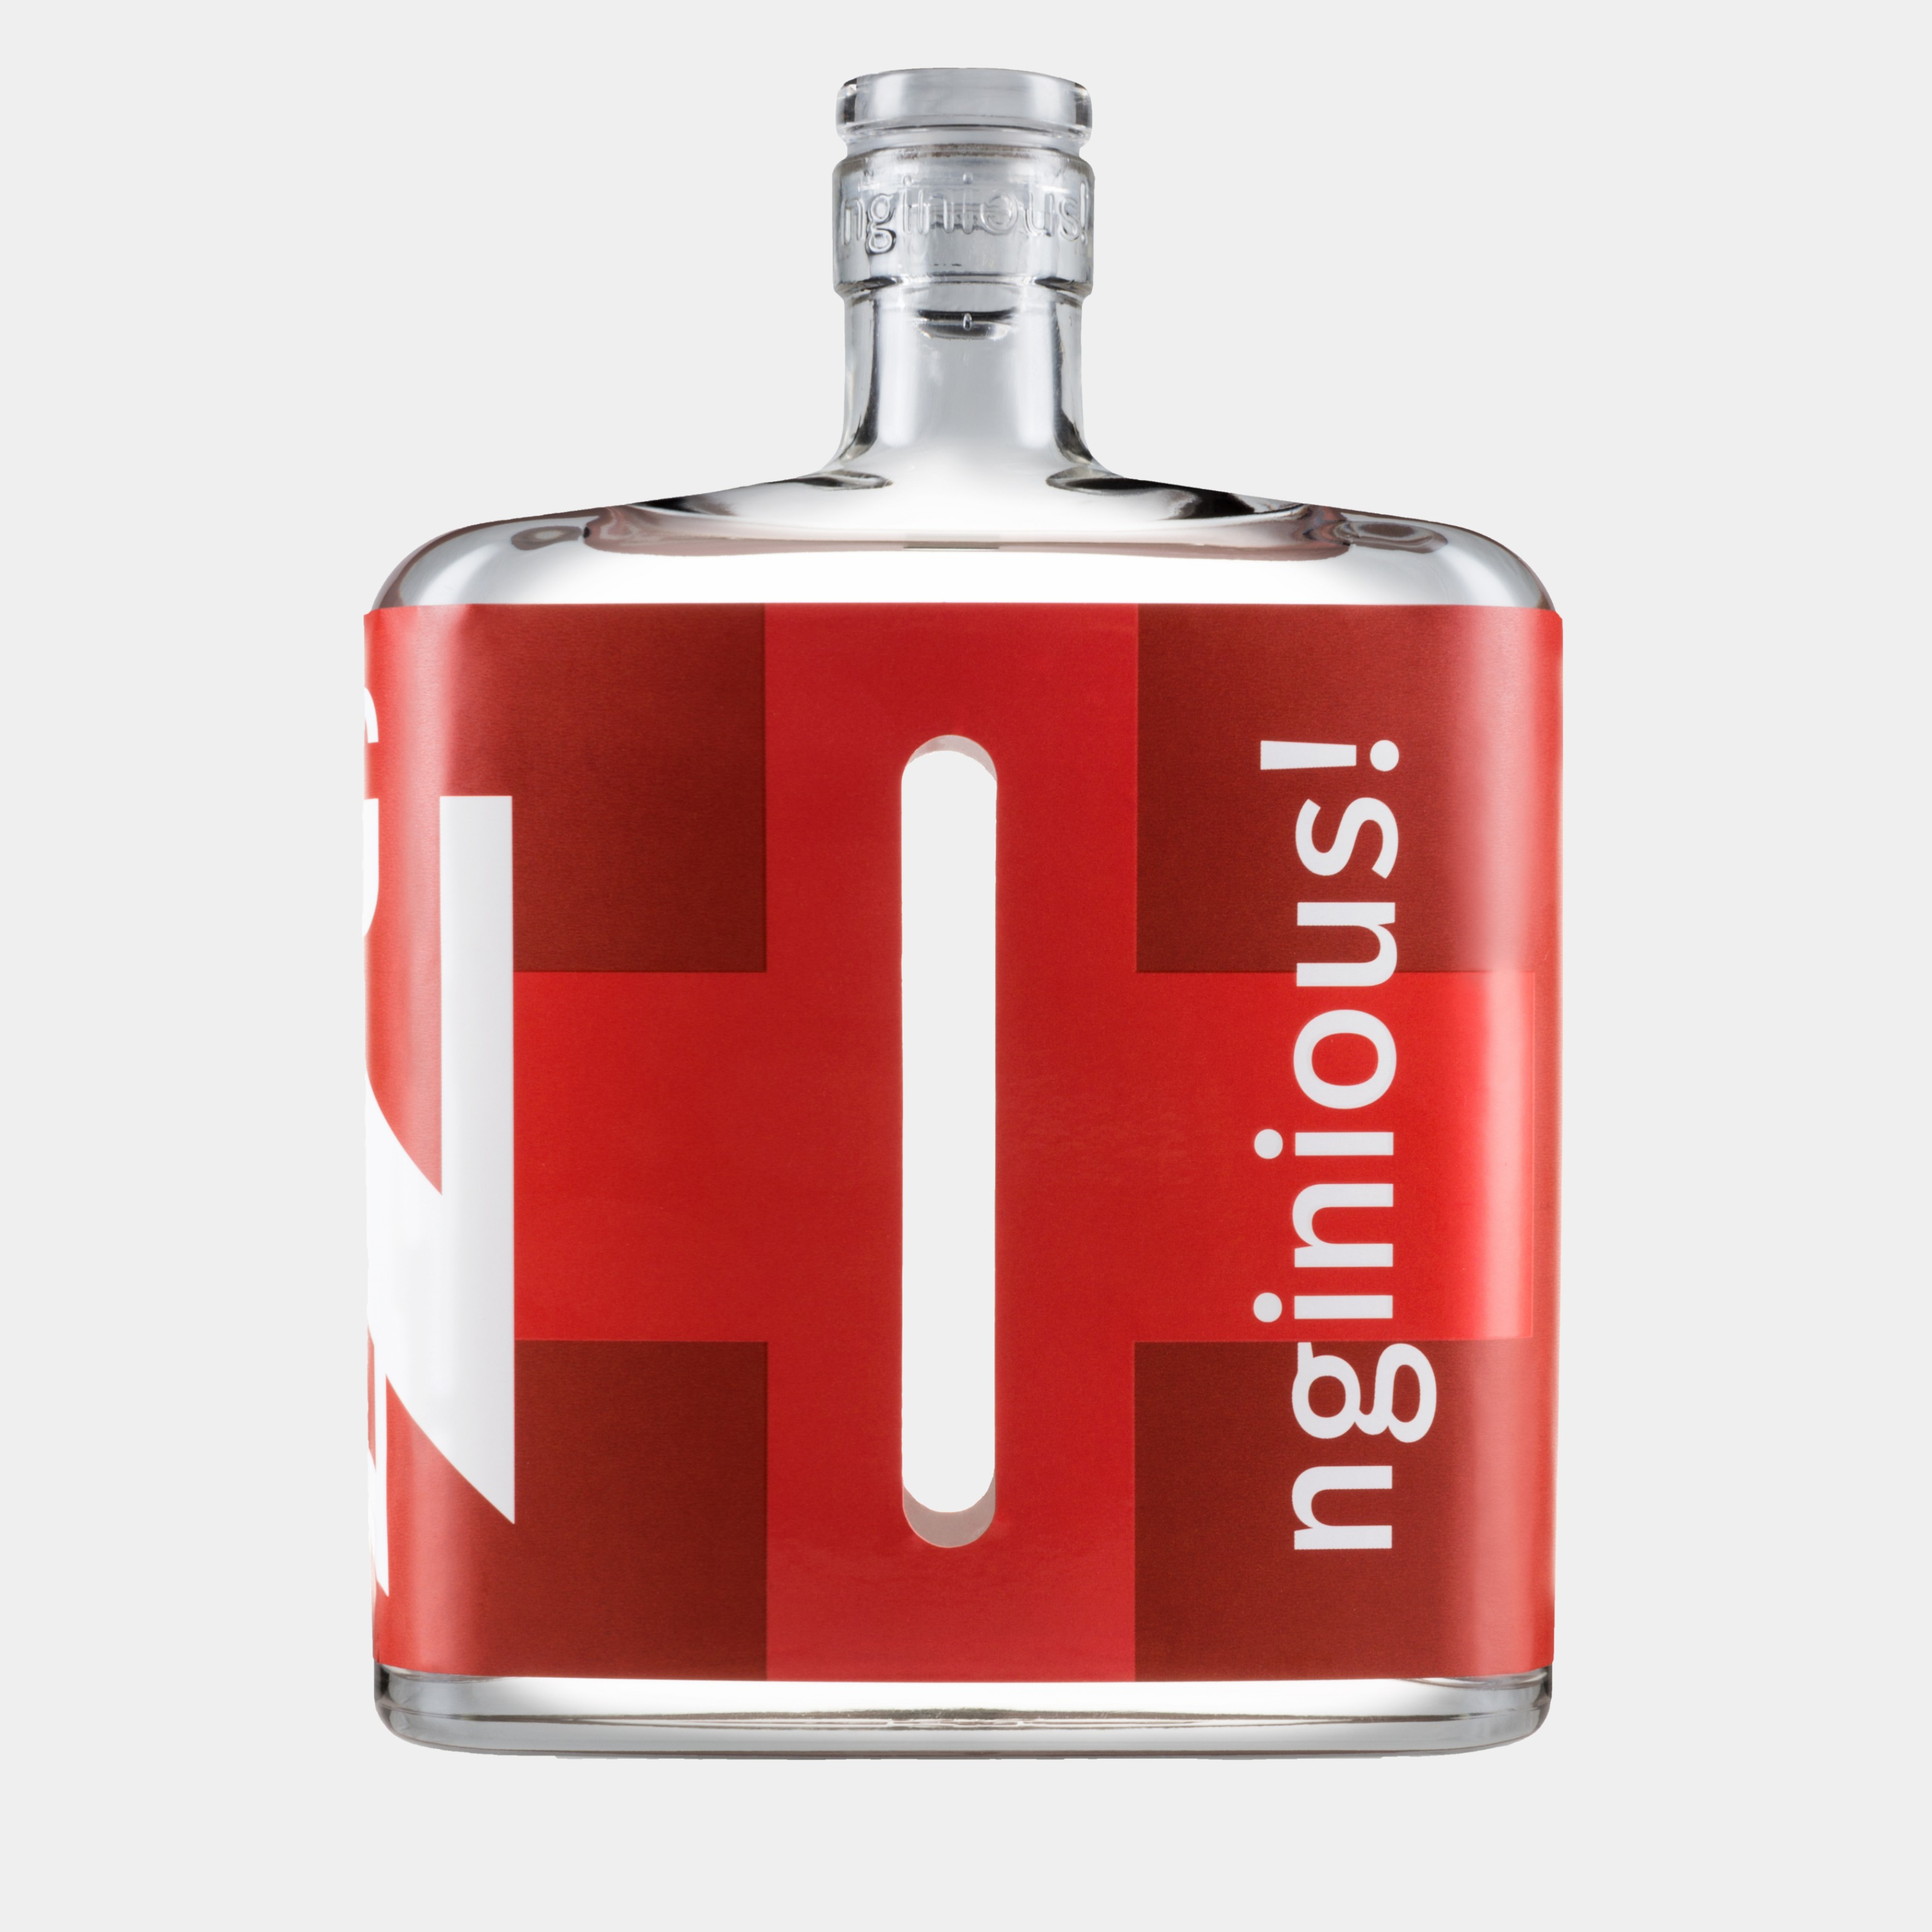 nginious! Swiss Blended GIn bei ginobility.de kaufen